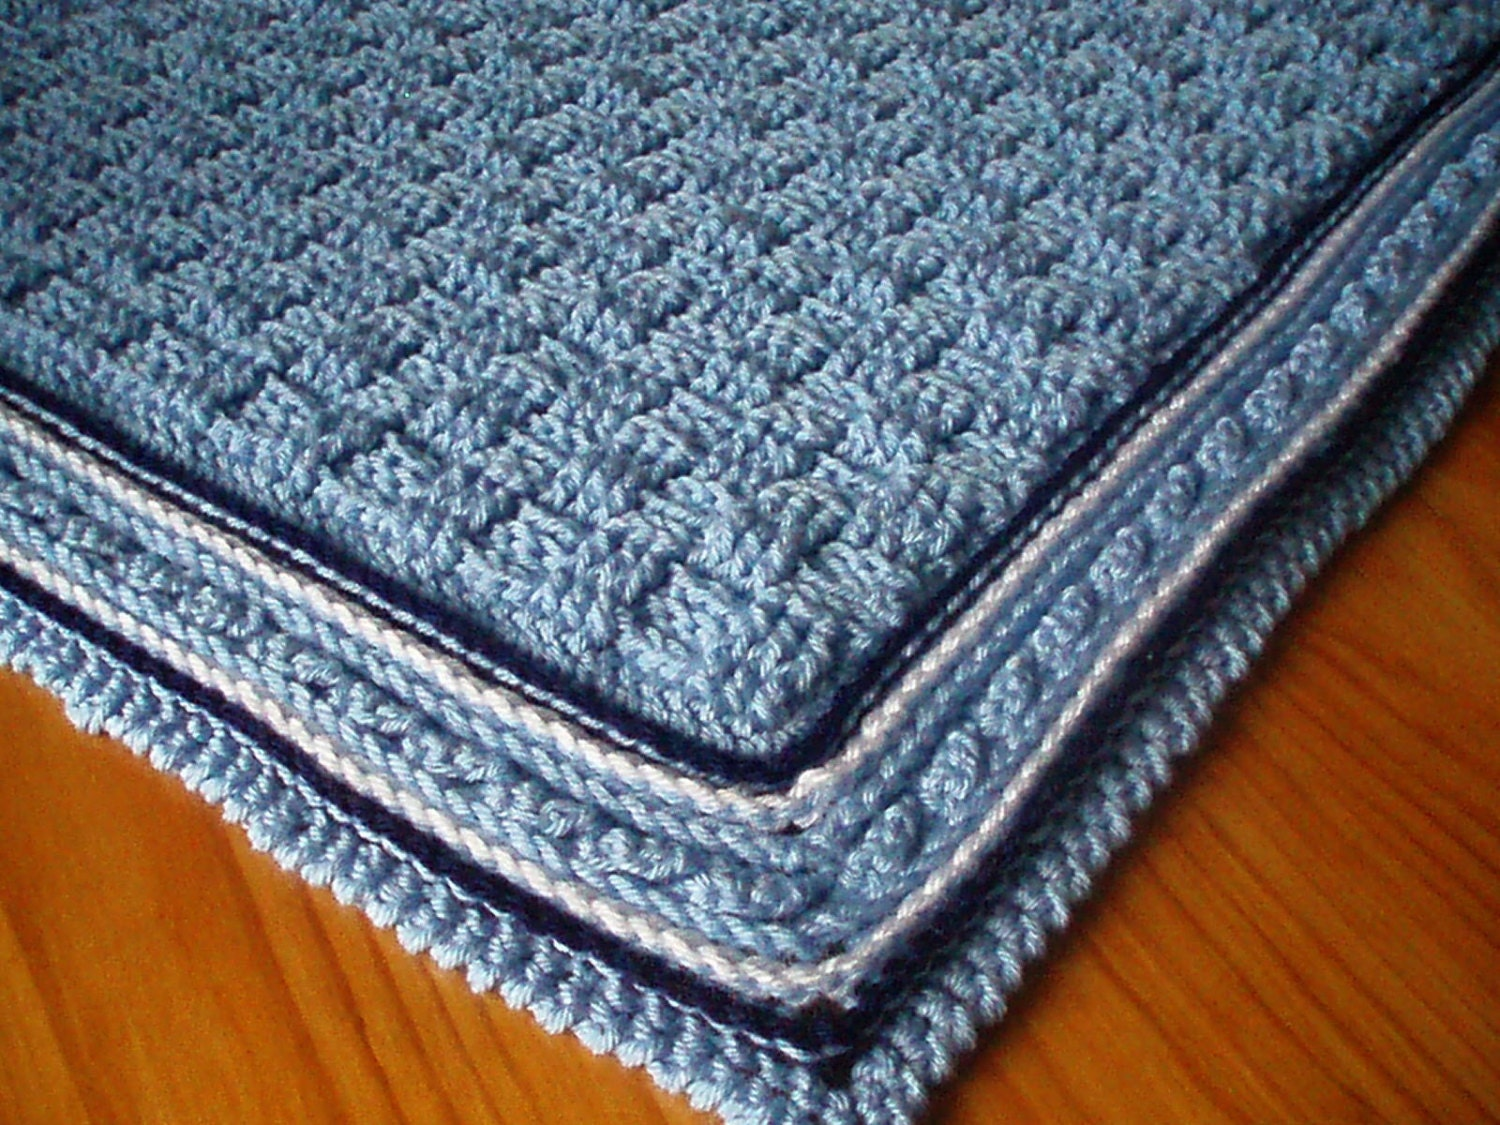 Crochet Pattern for Baby Blanket, Basket Weave Stitch Baby Afghan ...